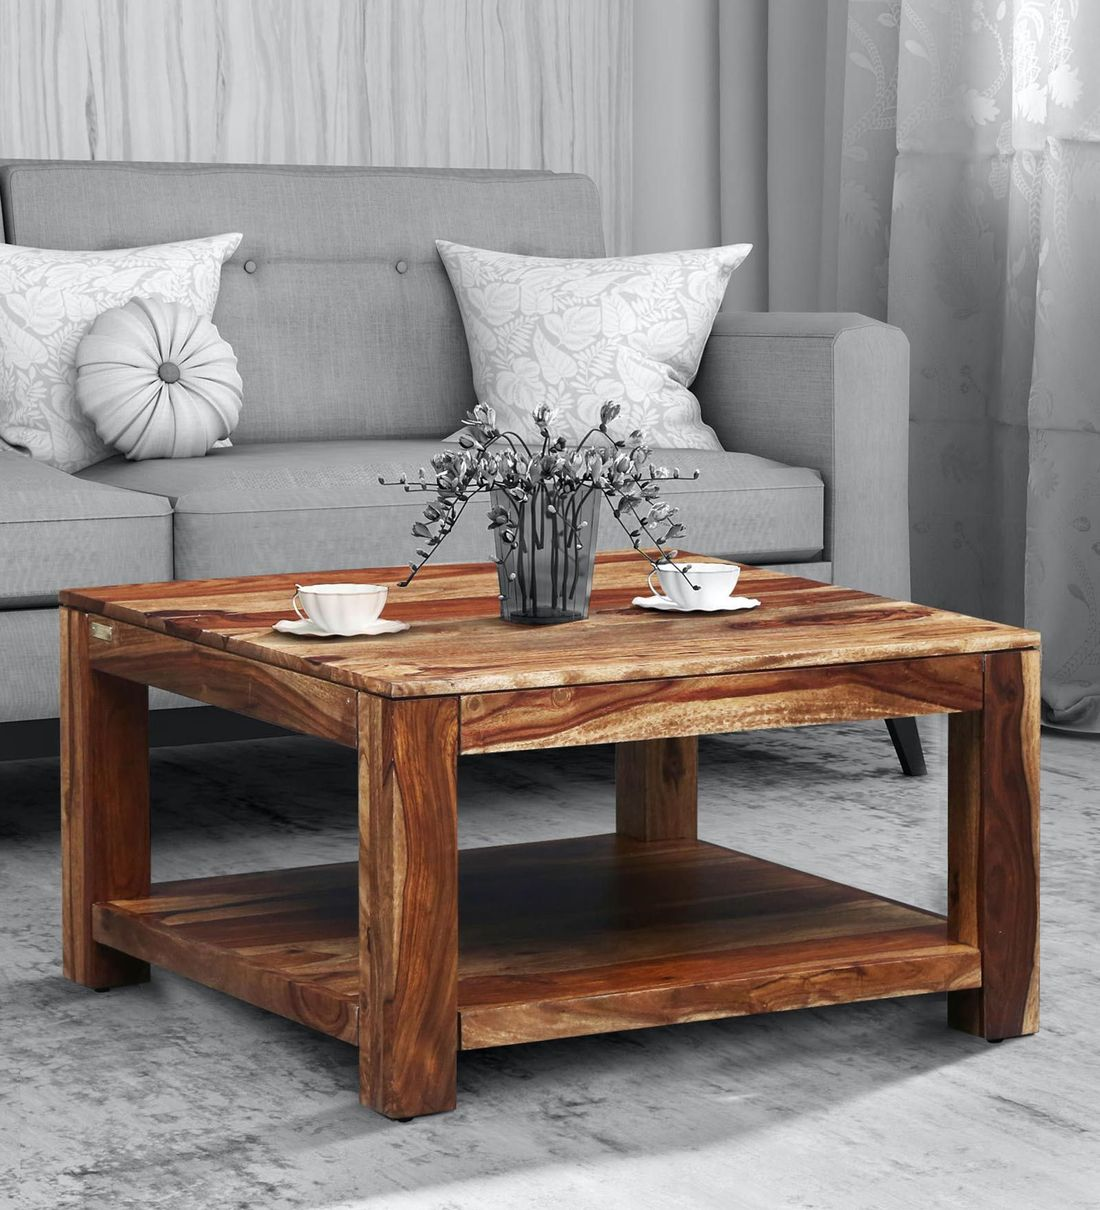 Buy Oriel Solid Wood Coffee Table In Rustic Teak Finish By Woodsworth Online Square Coffee Tables Tables Furniture Pepperfry Product